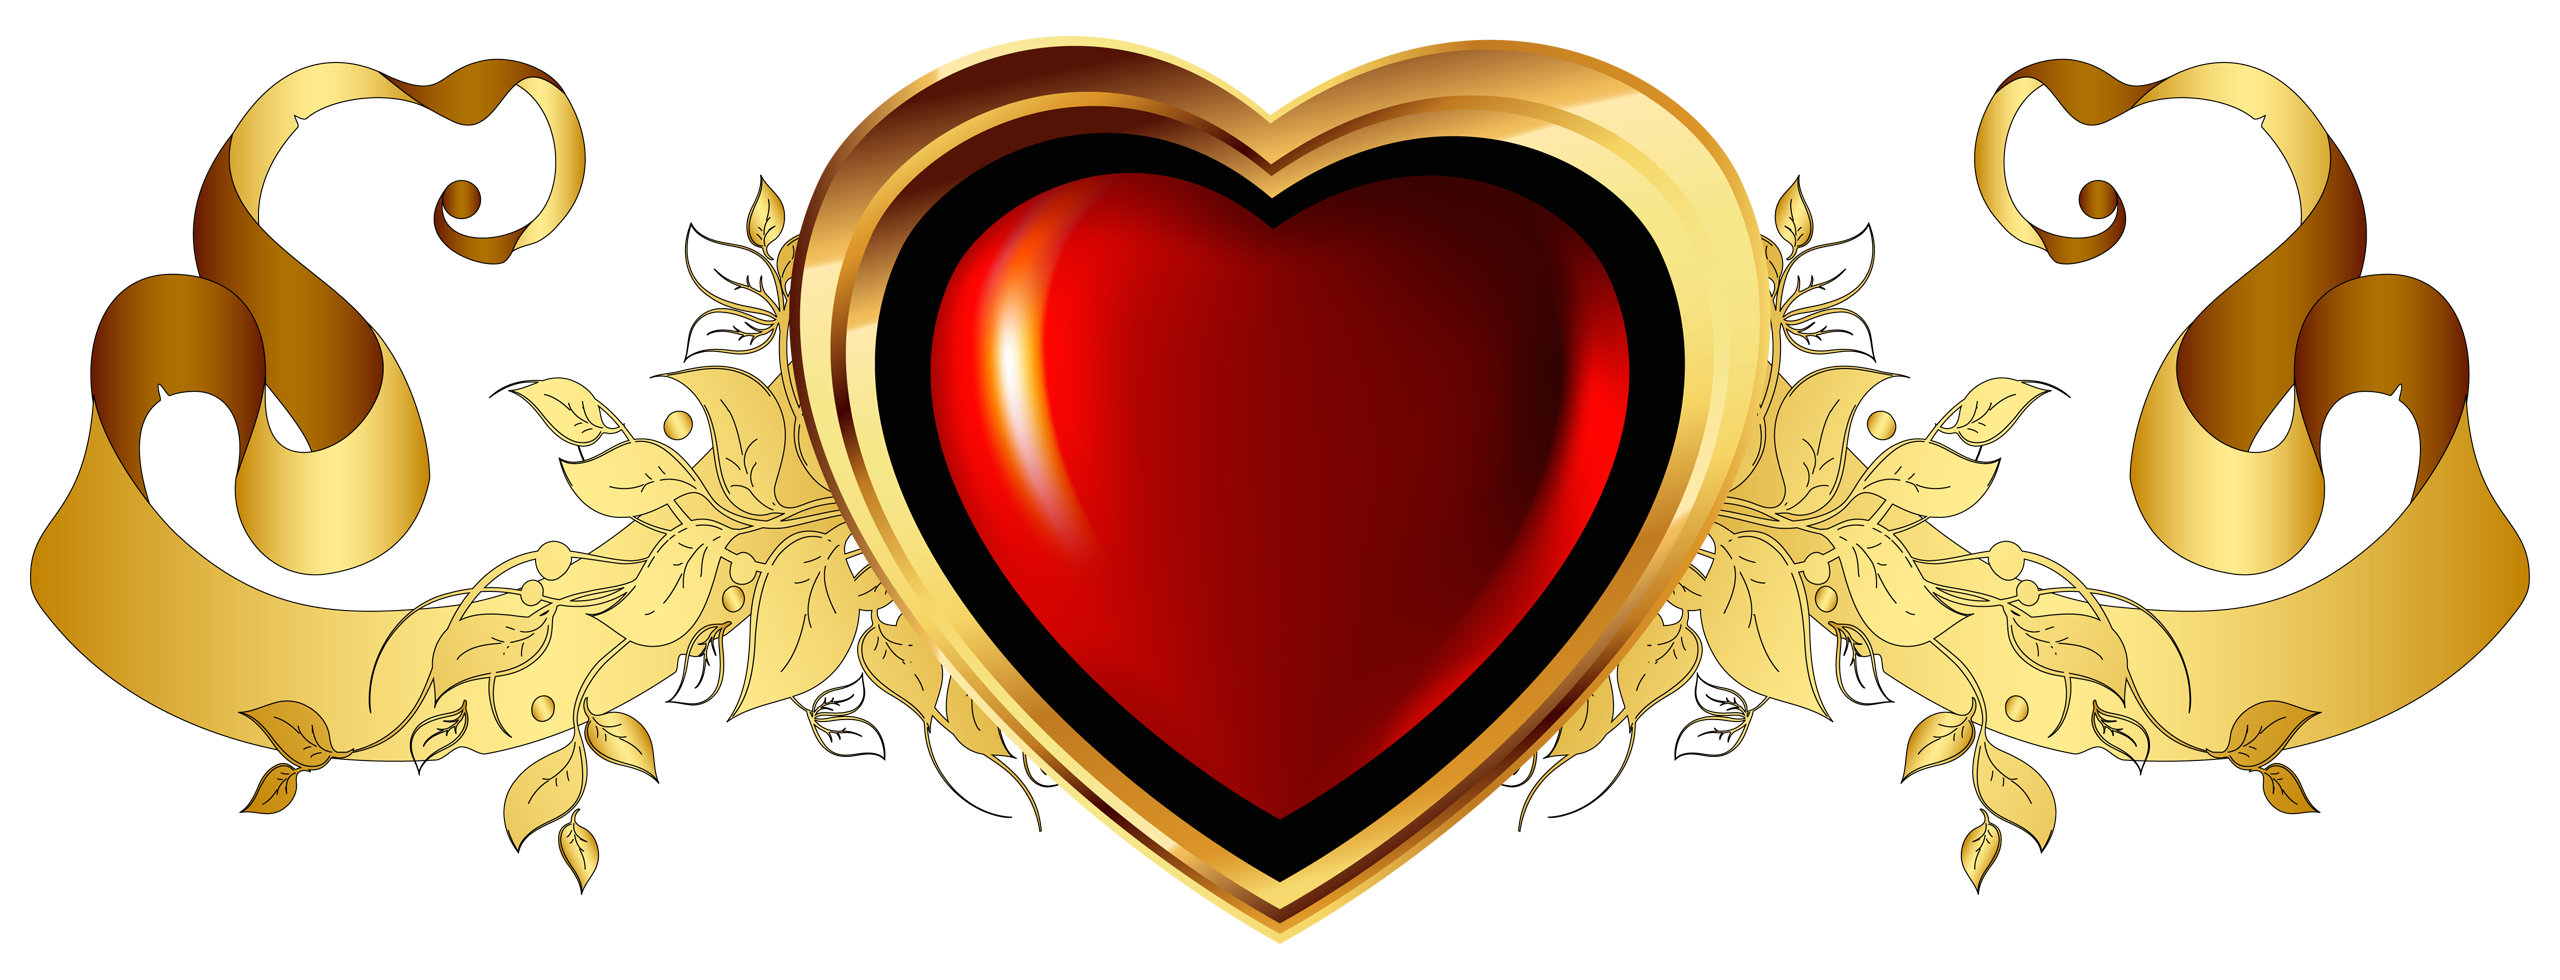 Red gold clipart.